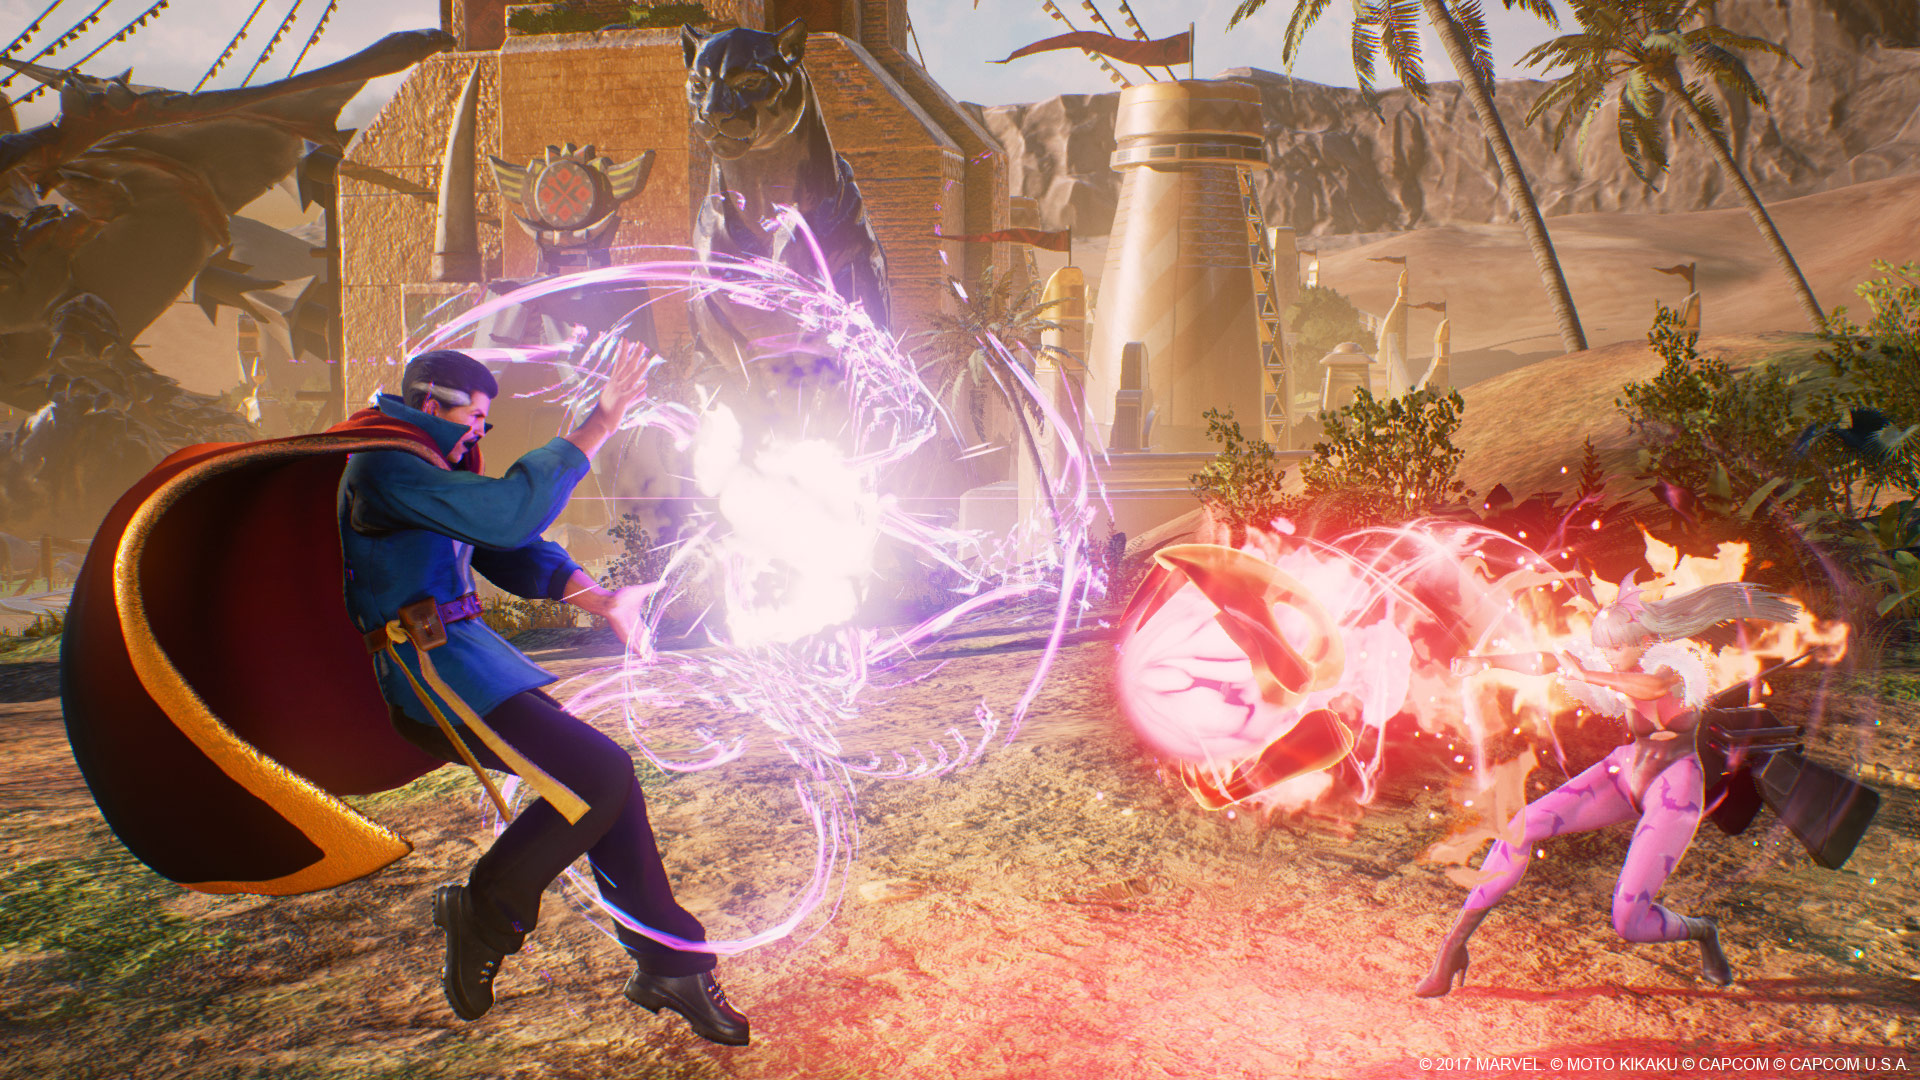 Marvel vs. Capcom: Infinite cover art and new character images from E3 2017 5 out of 26 image gallery